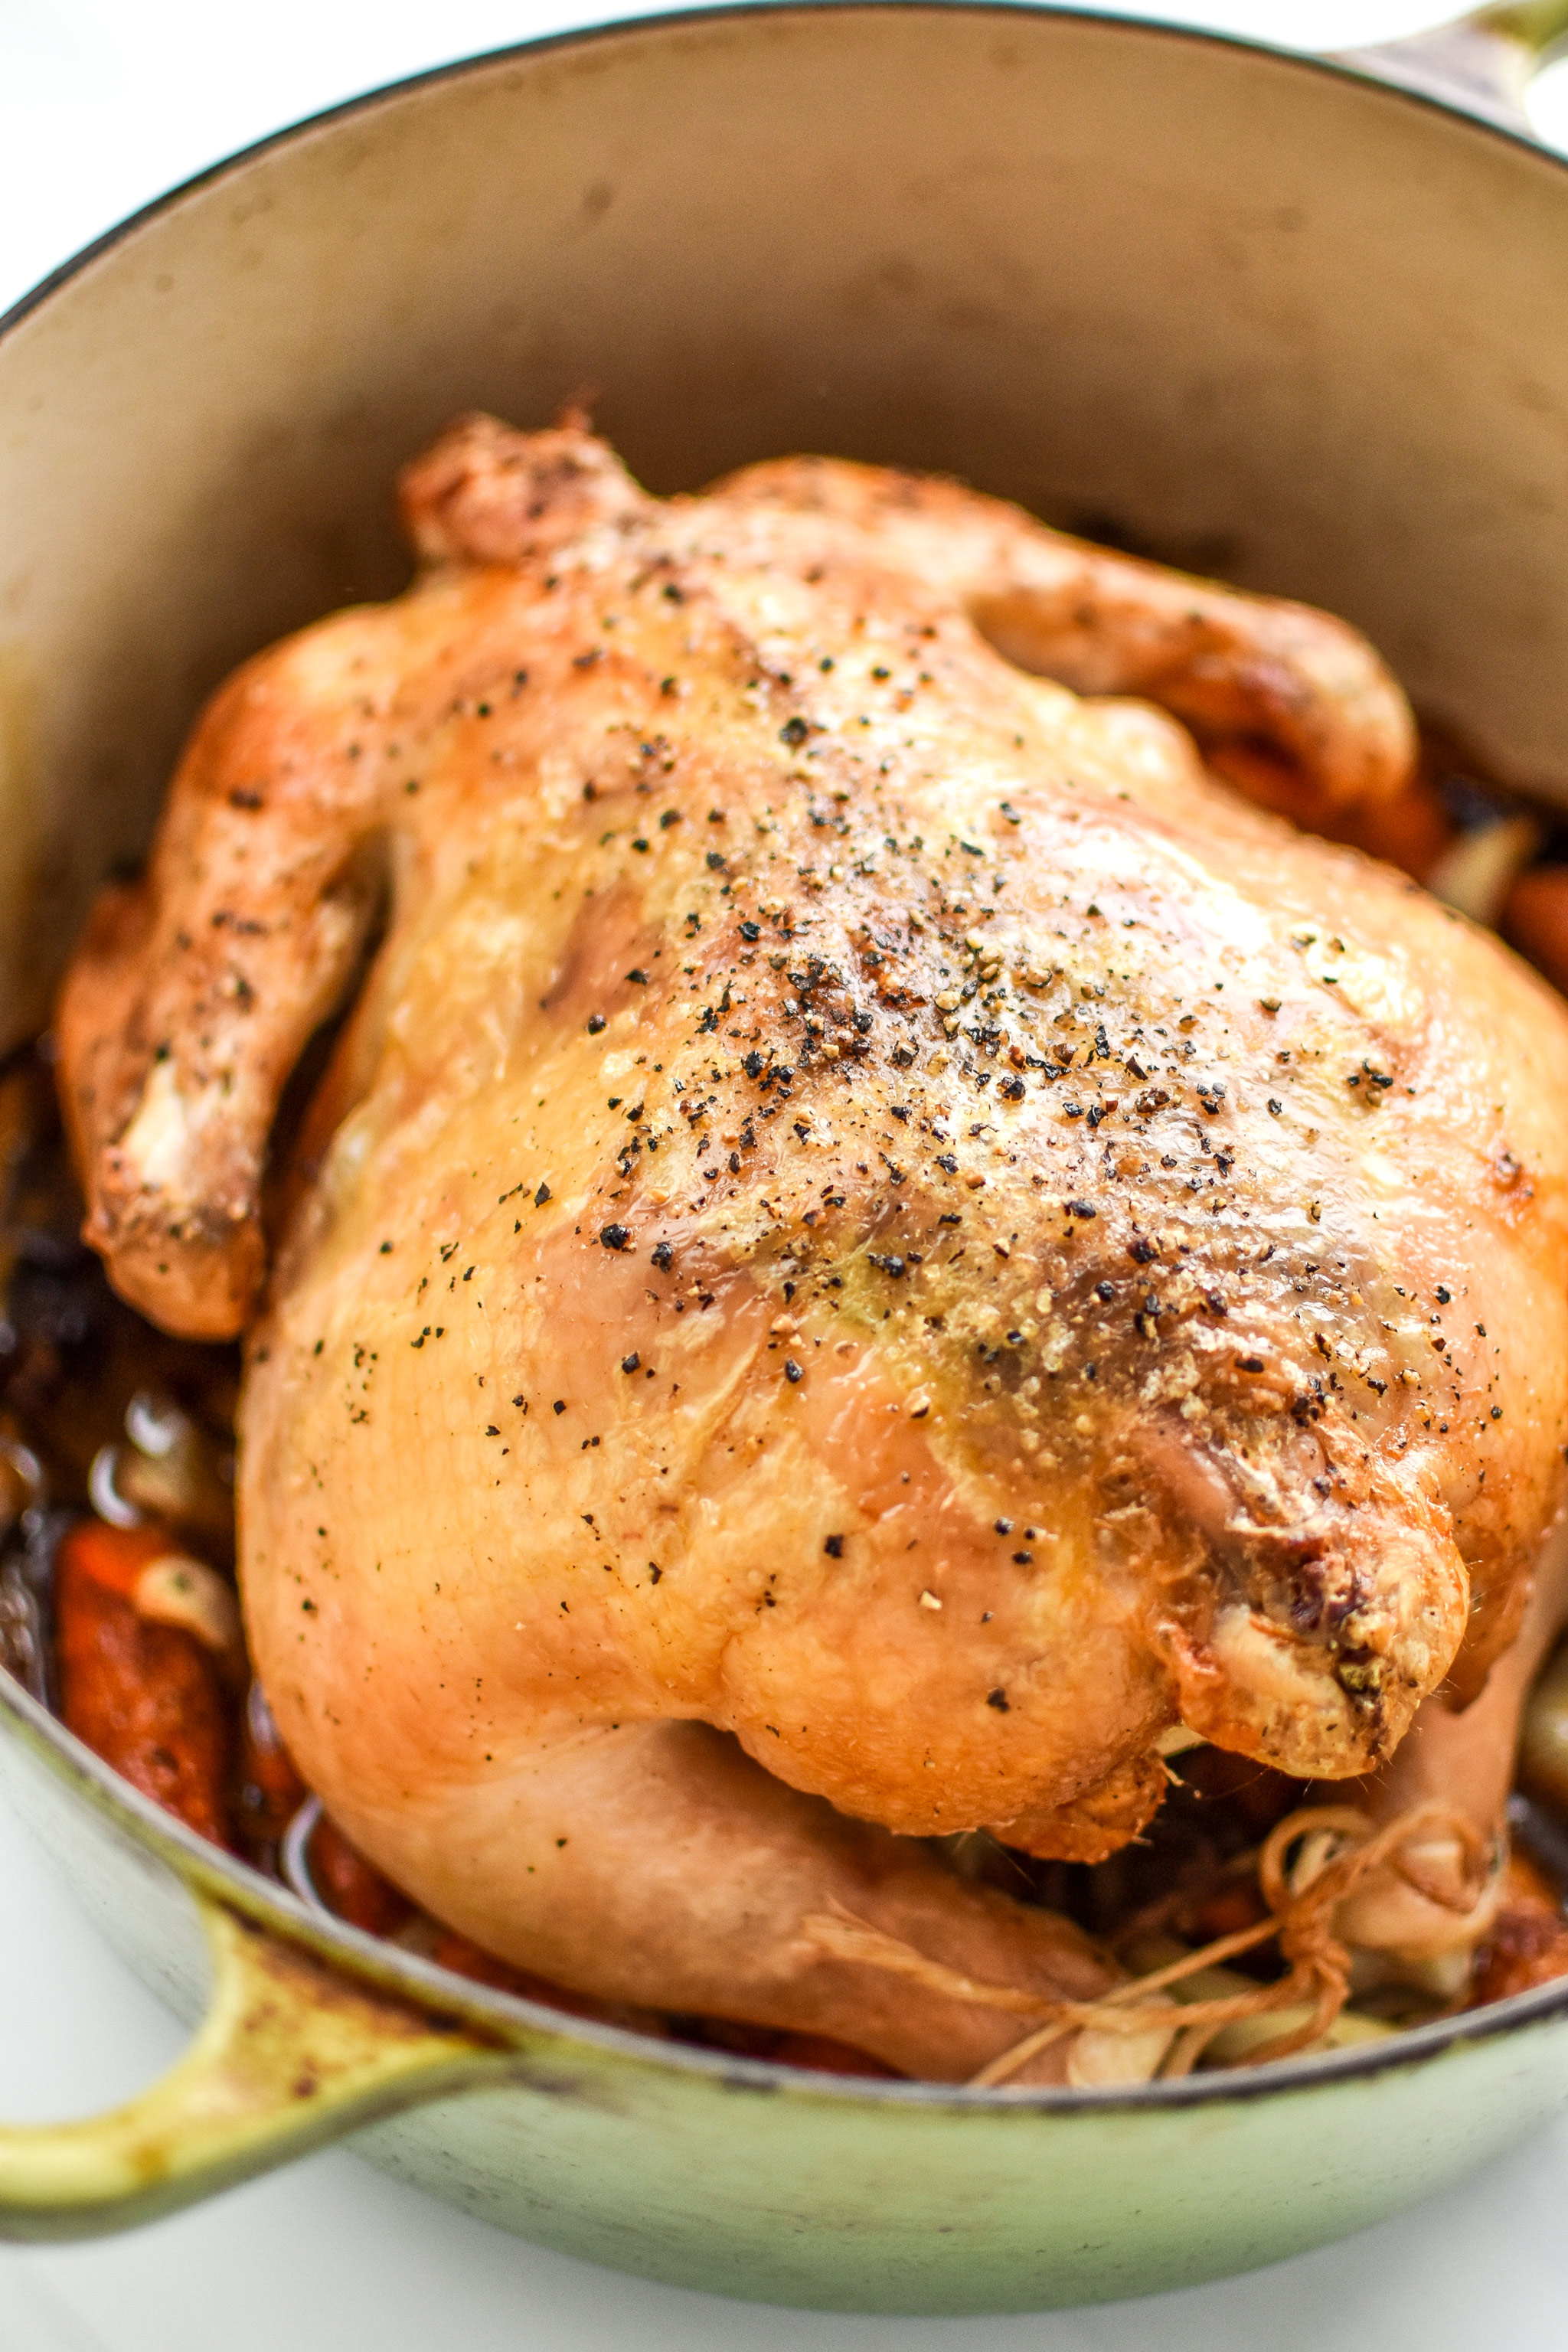 A simple whole roast chicken cooked in a Dutch oven.